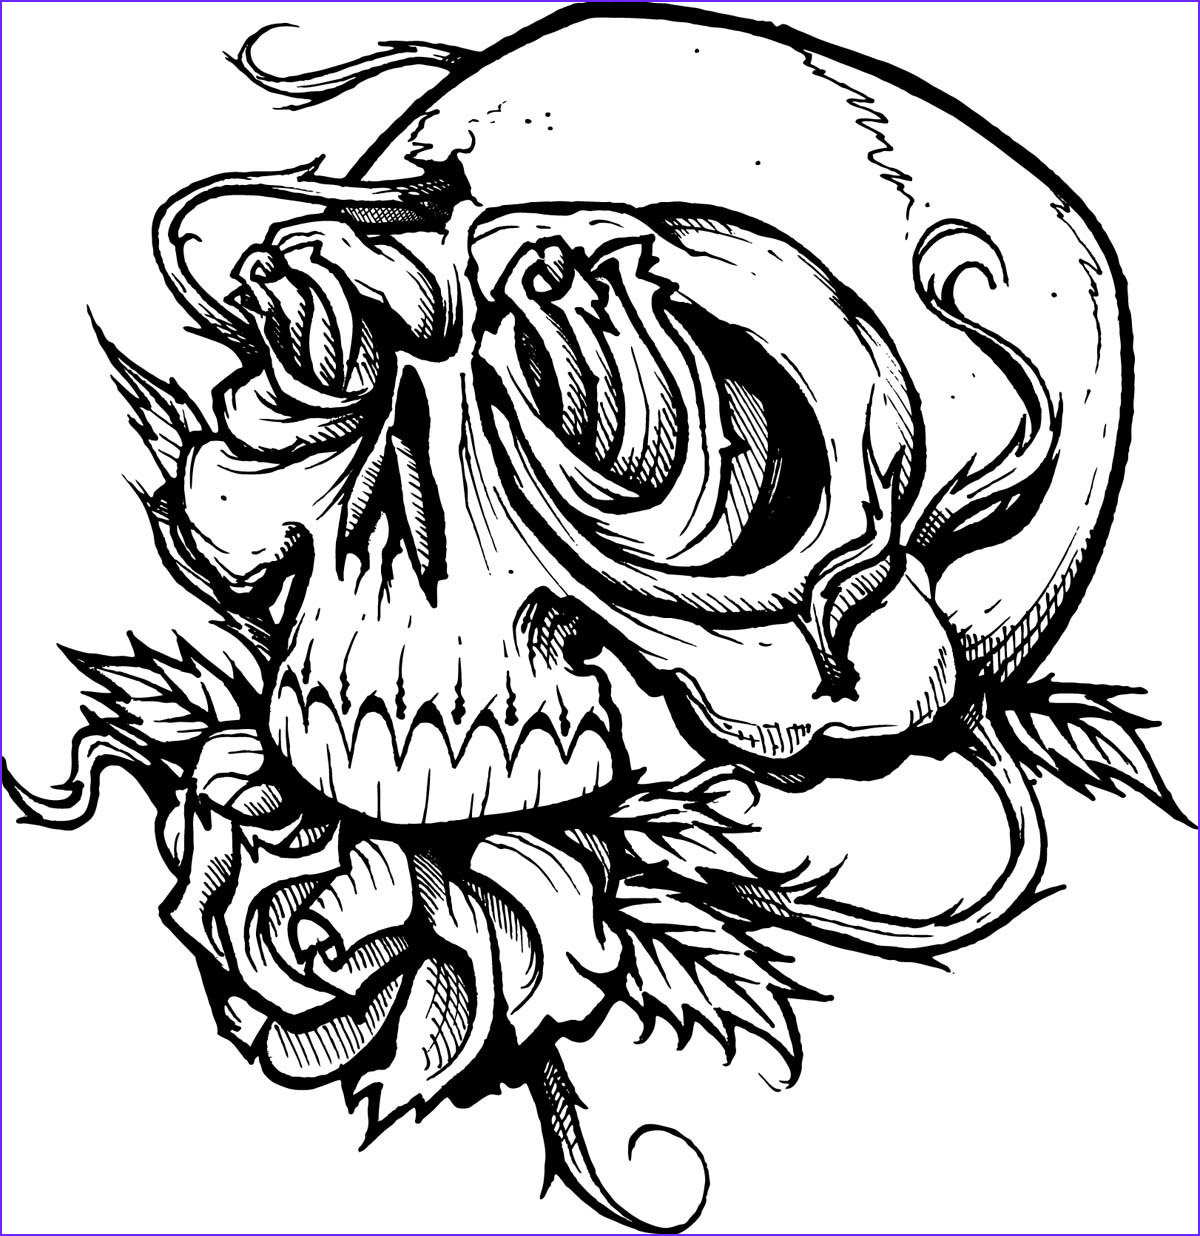 Freee Printable Coloring Pages Cool Stock Free Printable Halloween Coloring Pages for Adults Best